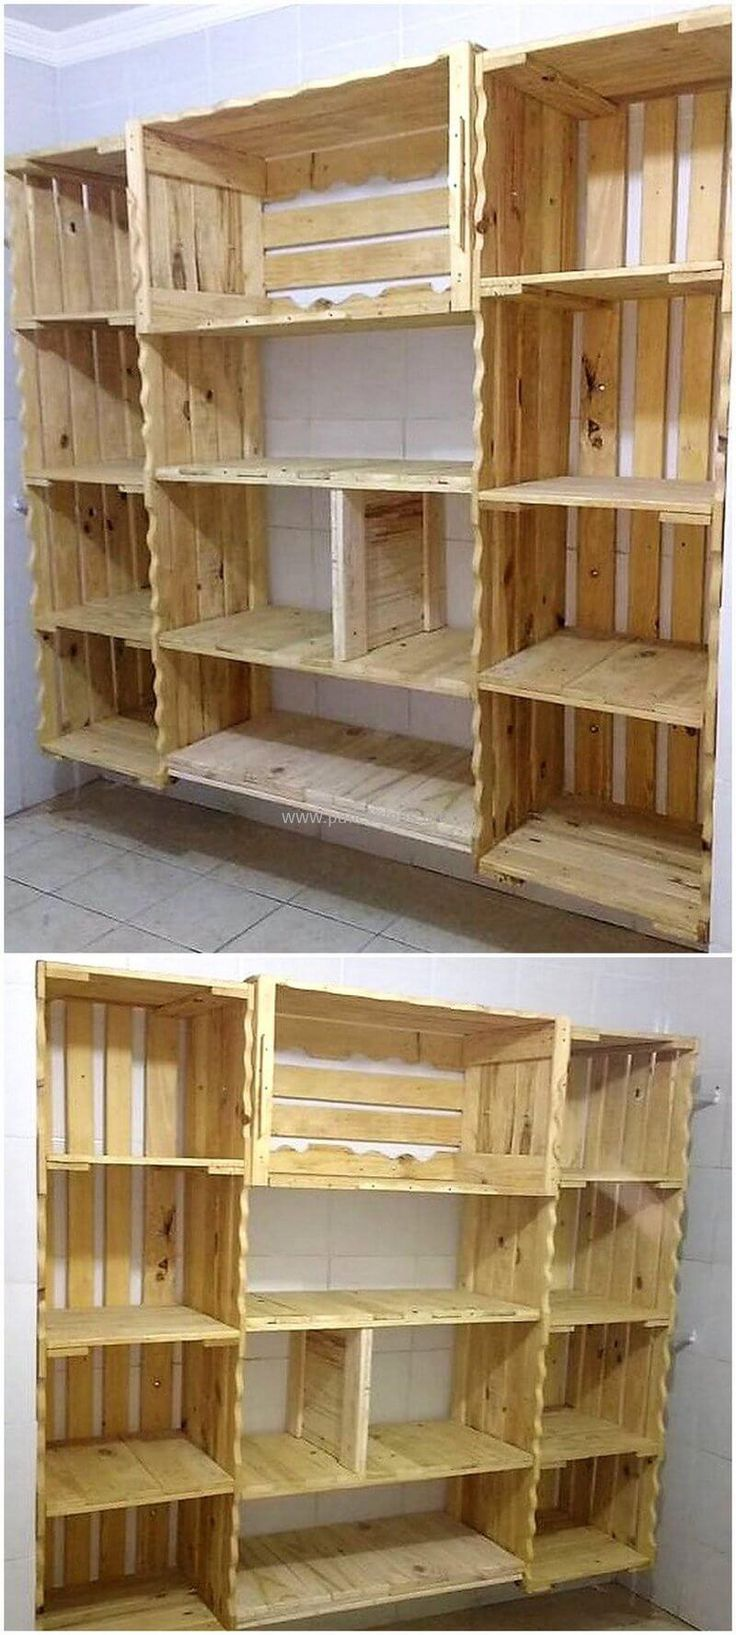 pallet fruit crates made shelving wardrobe